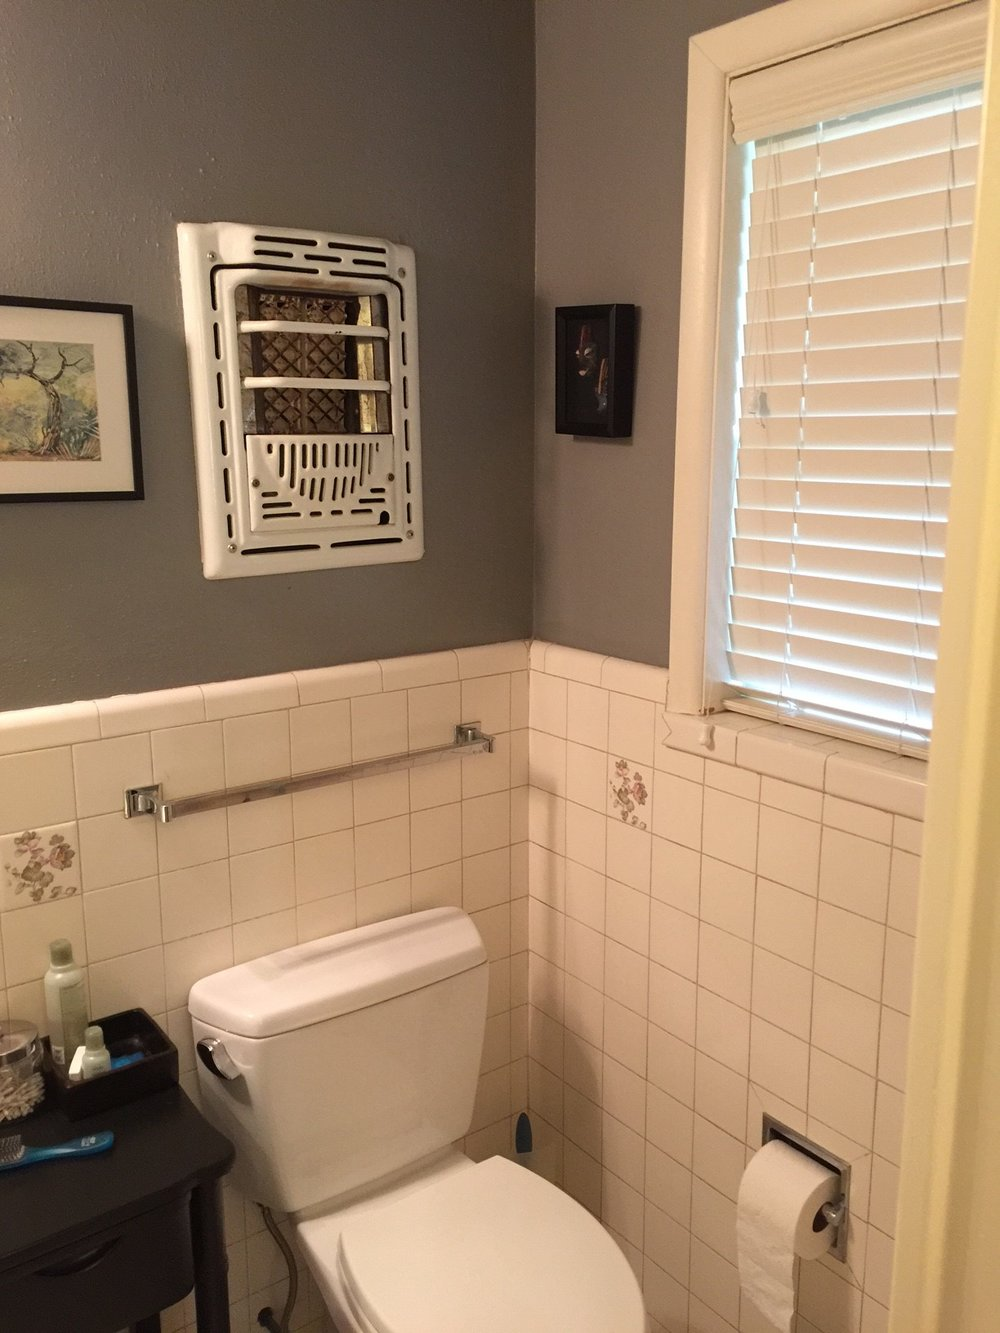 Trend Before Bathroom Remodel